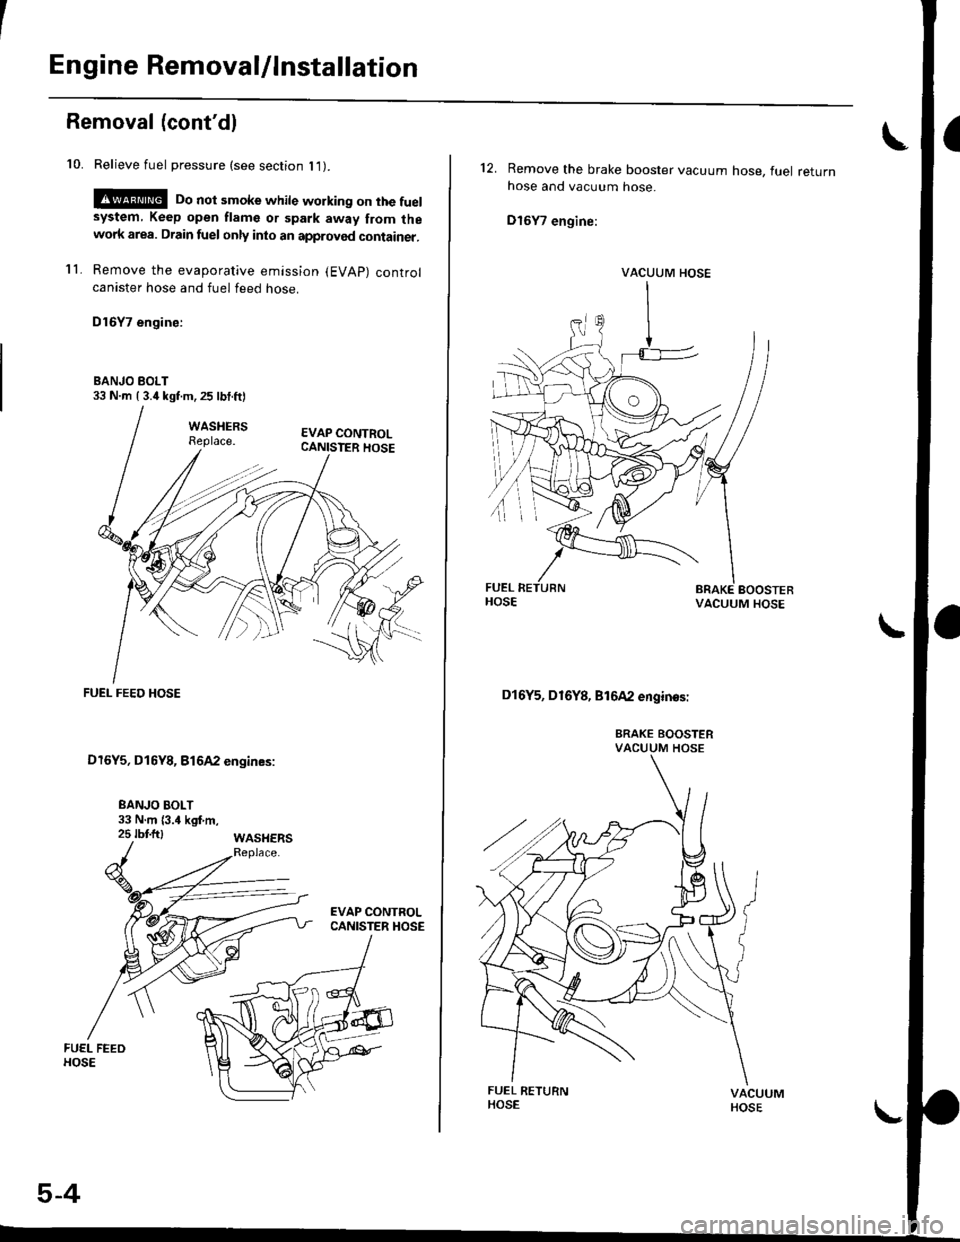 HONDA CIVIC 1999 6.G Workshop Manual